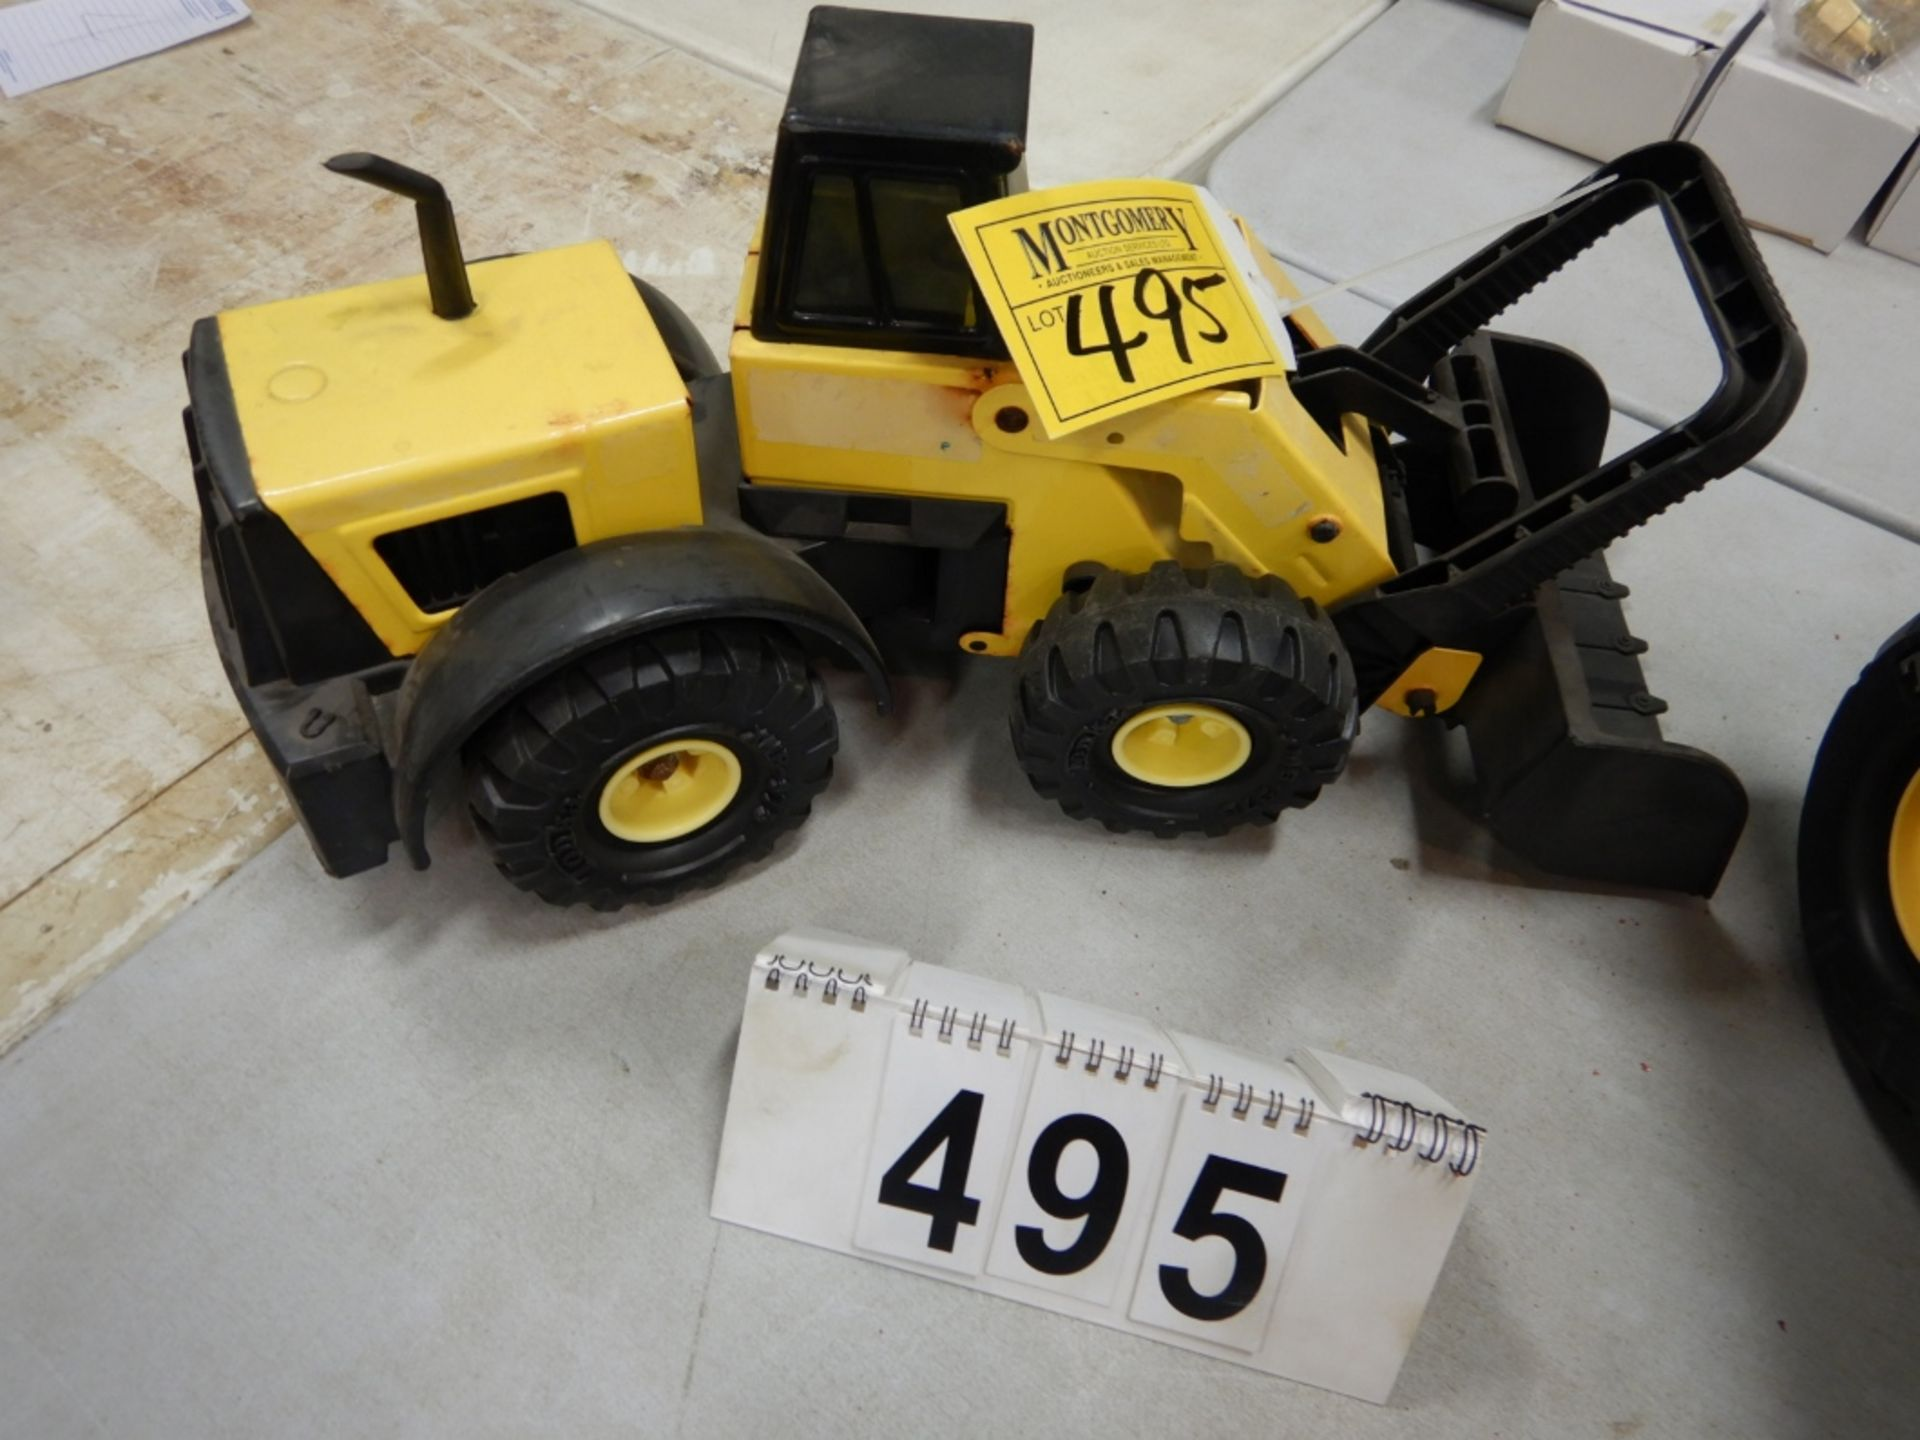 TONKA WHEEL LOADER, TONKA MINING TRUCK - Image 3 of 5